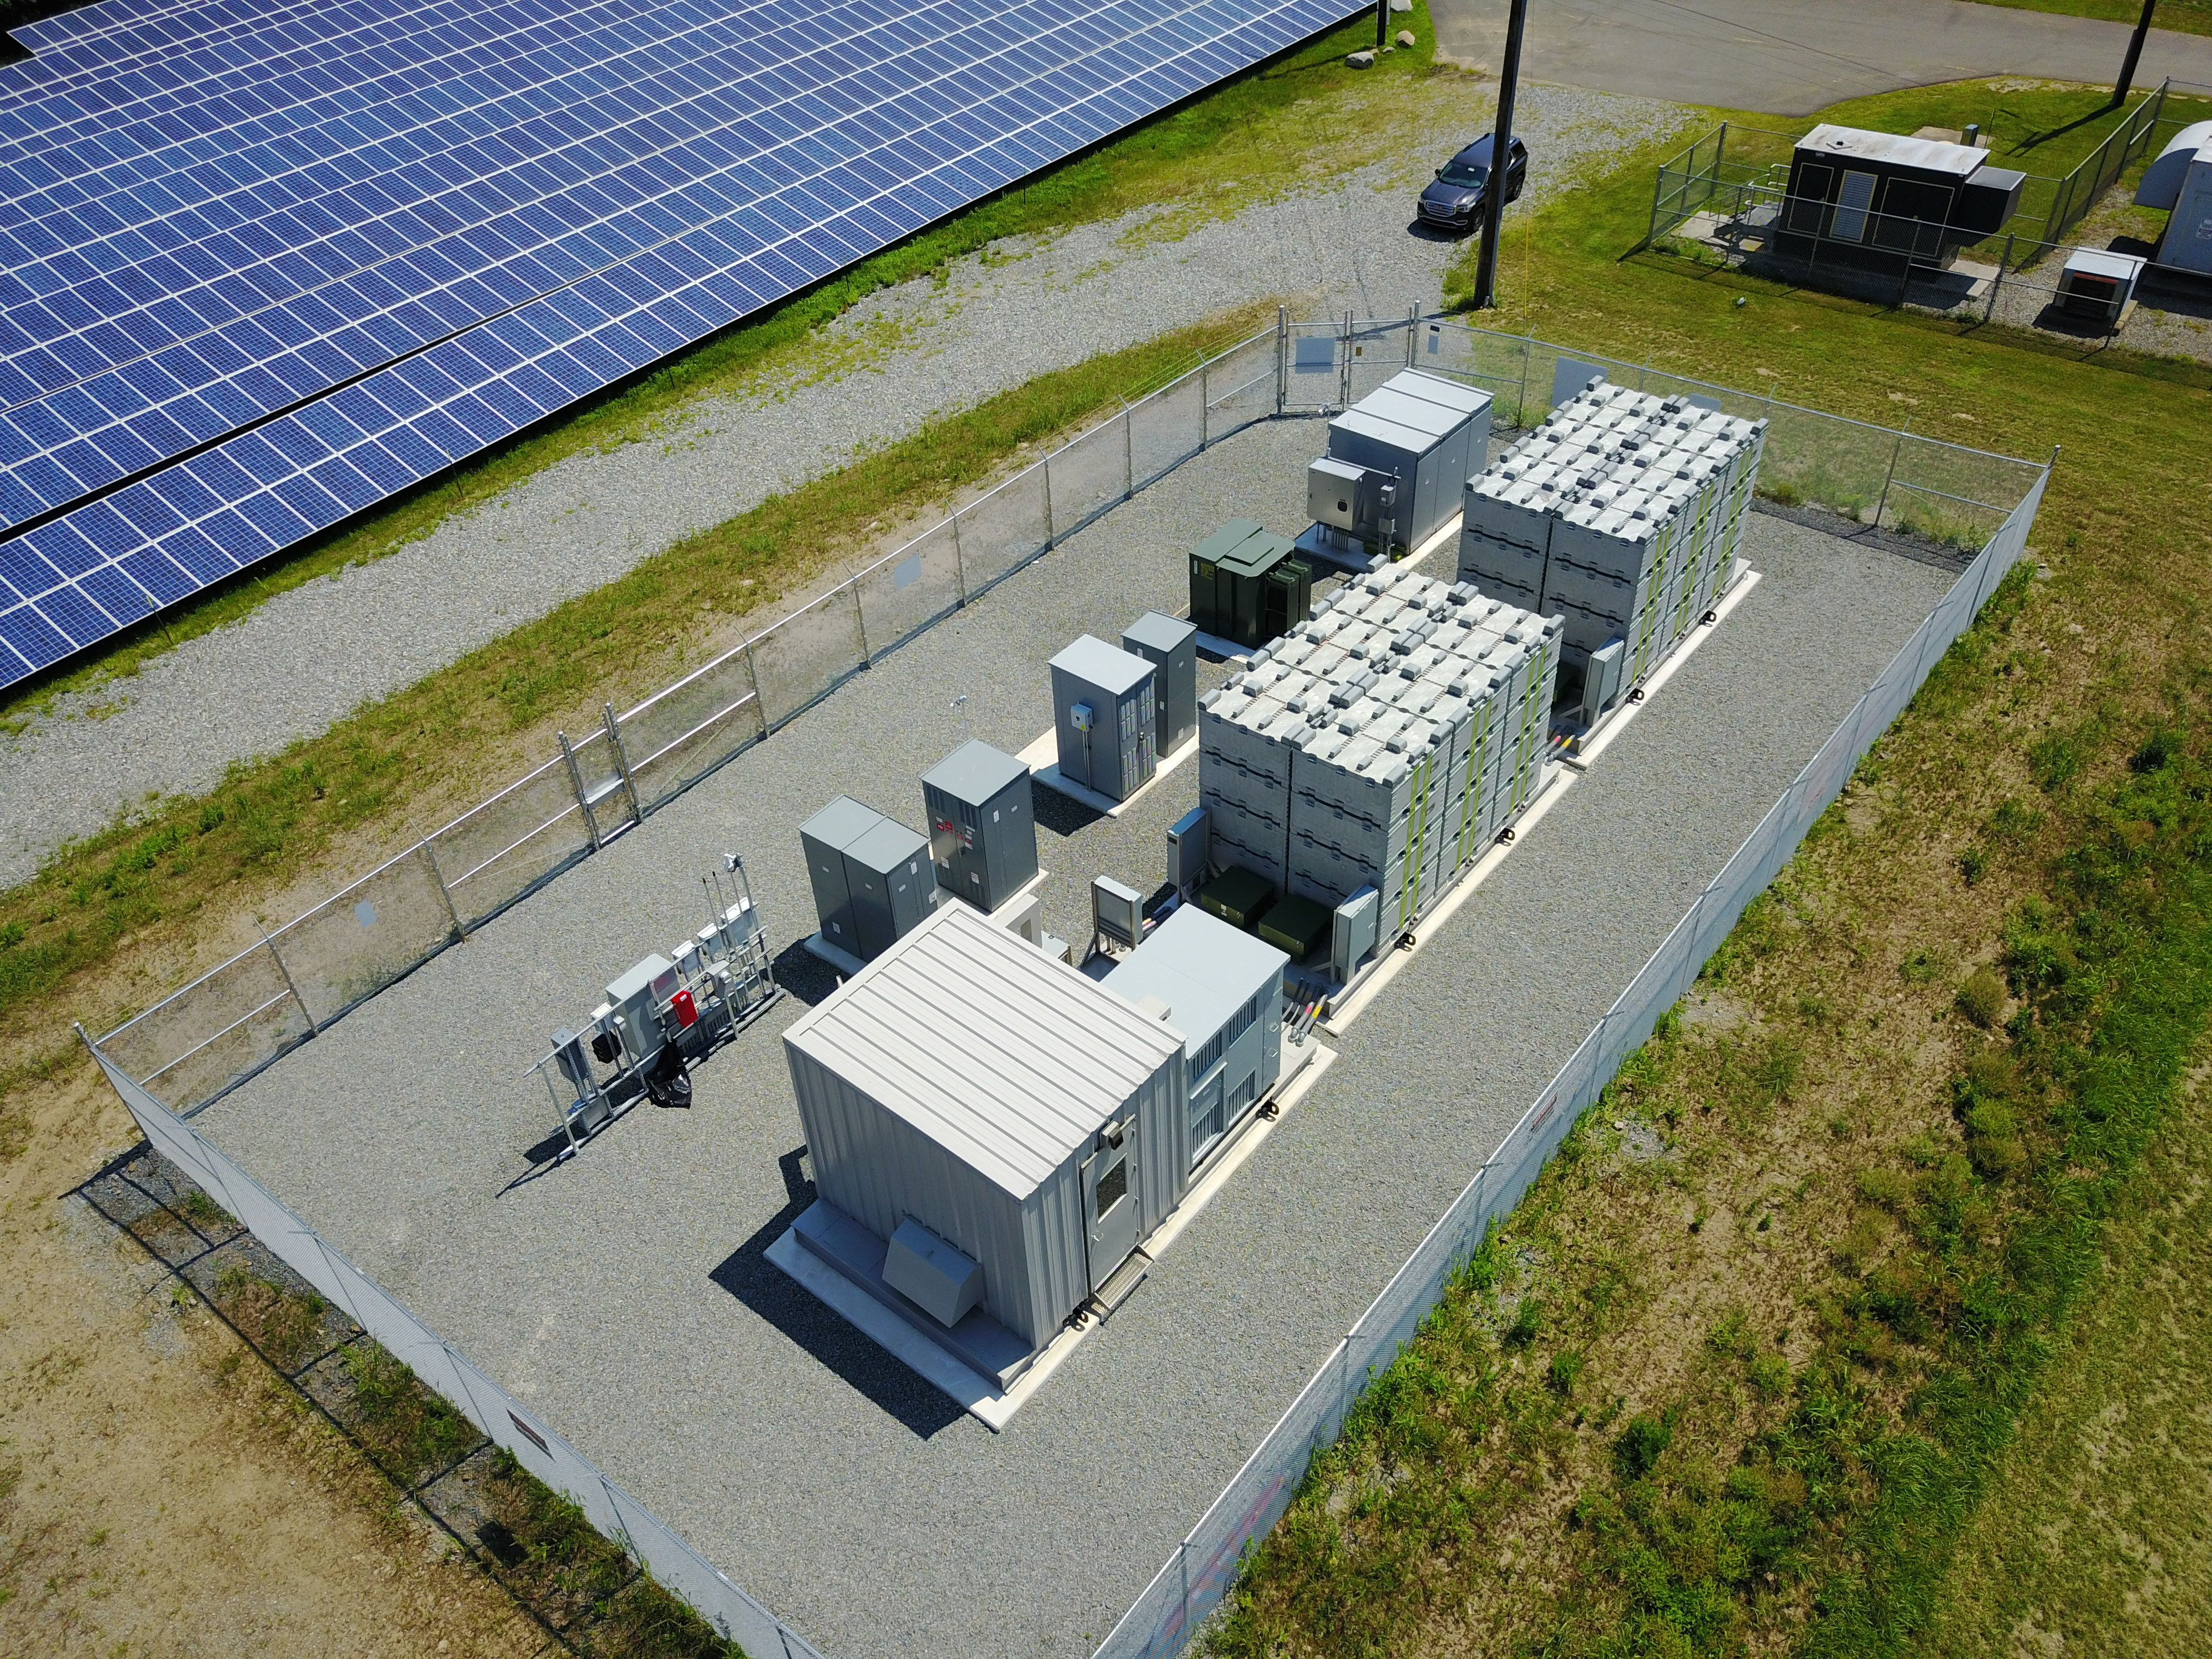 Pse G Installs And Commissions 1 Mwh Eos Aurora Battery System For Solar 4 All Microgrid Project At New Jersey Water Treatment Facility Business Wire